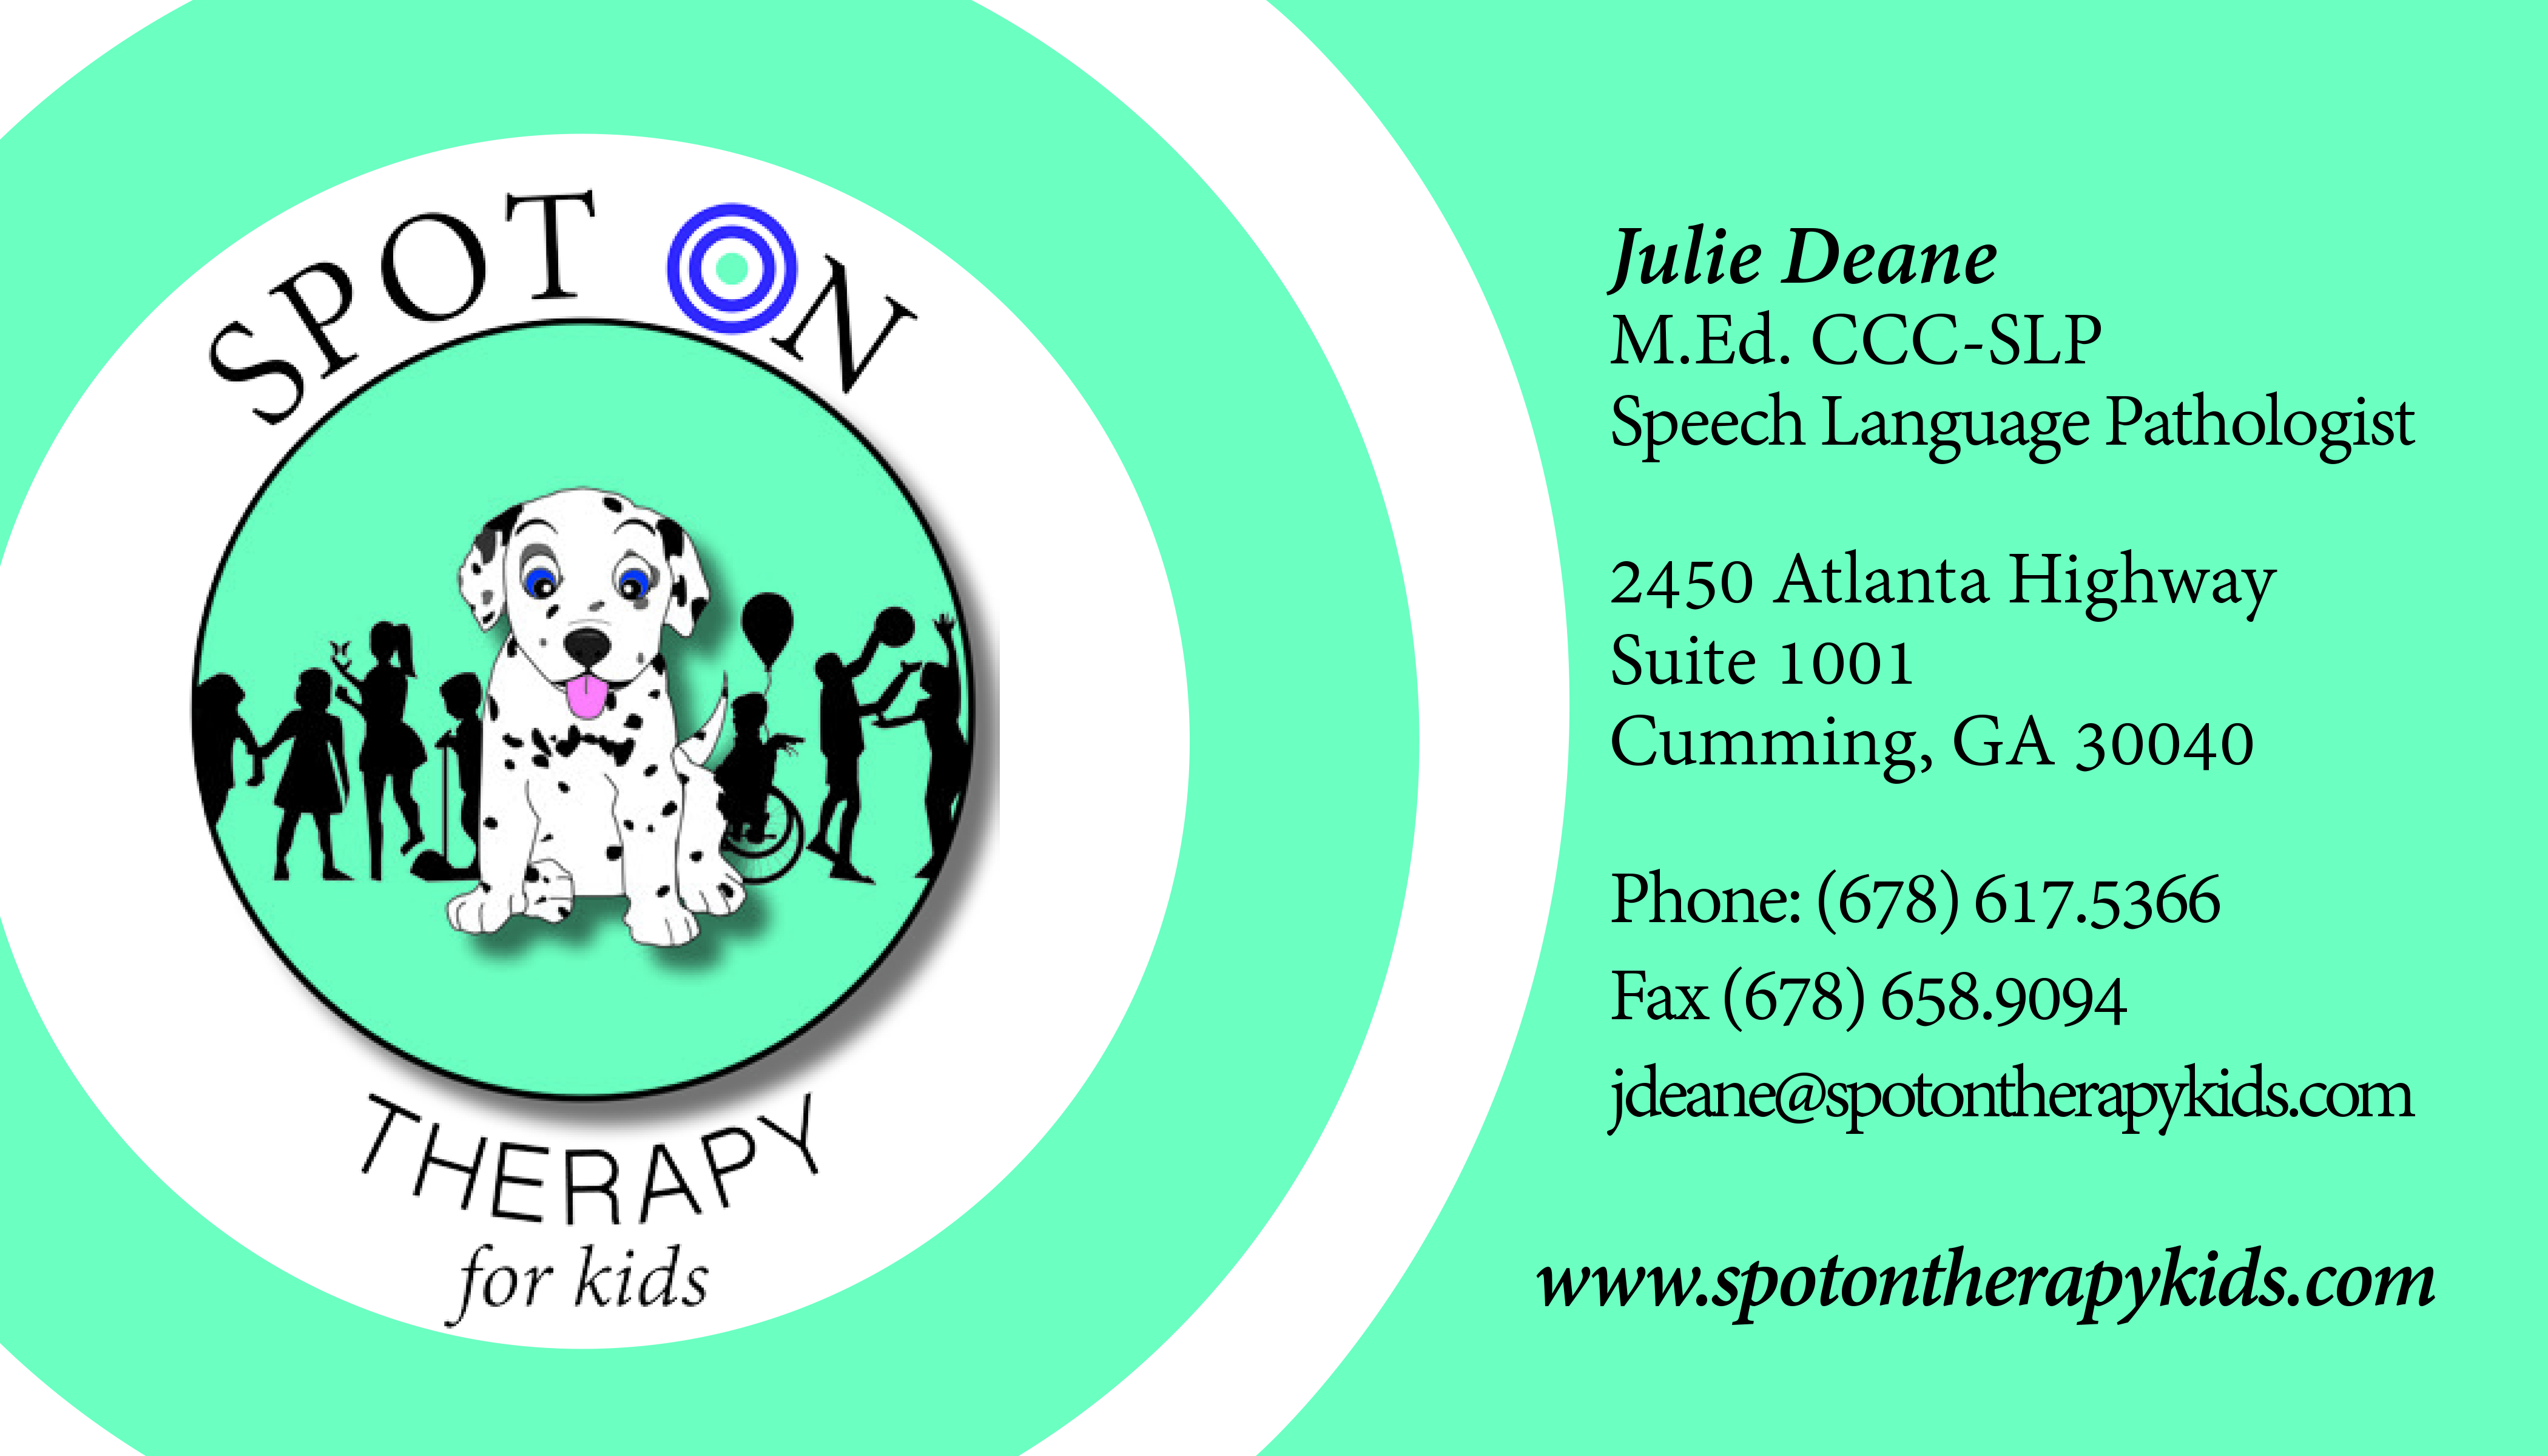 Awesome pics of georgia teaching certificate business cards and our team from georgia teaching certificate image source spotontherapykids xflitez Gallery